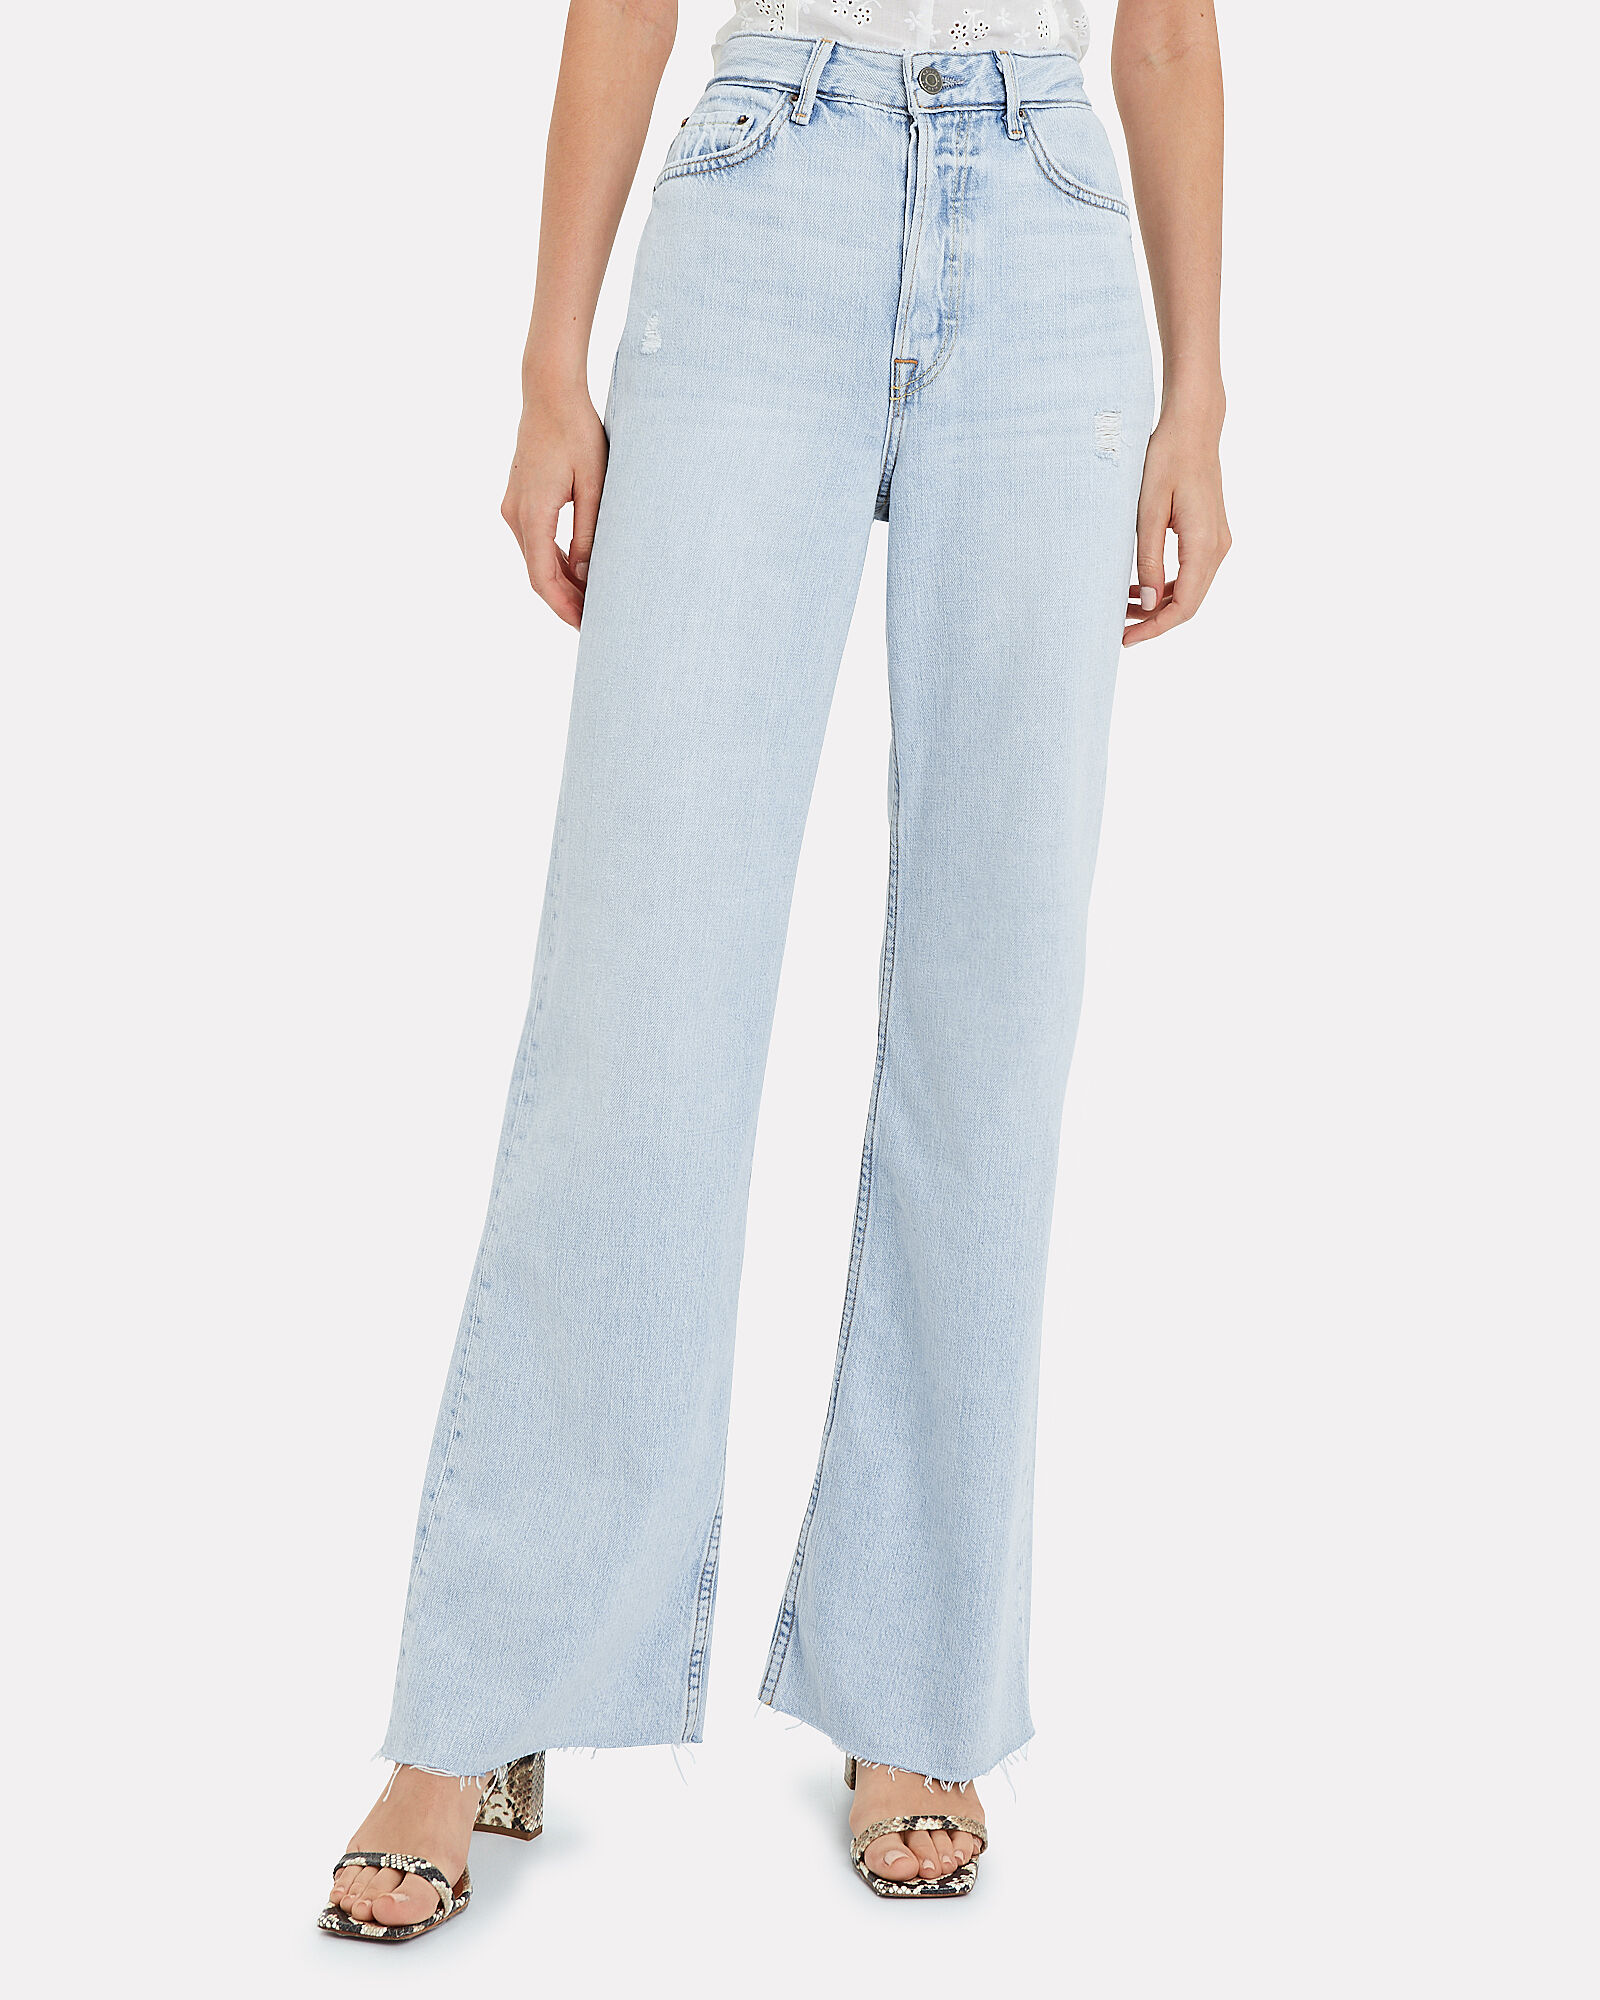 Carla Wide Leg Jeans, DENIM-LT, hi-res